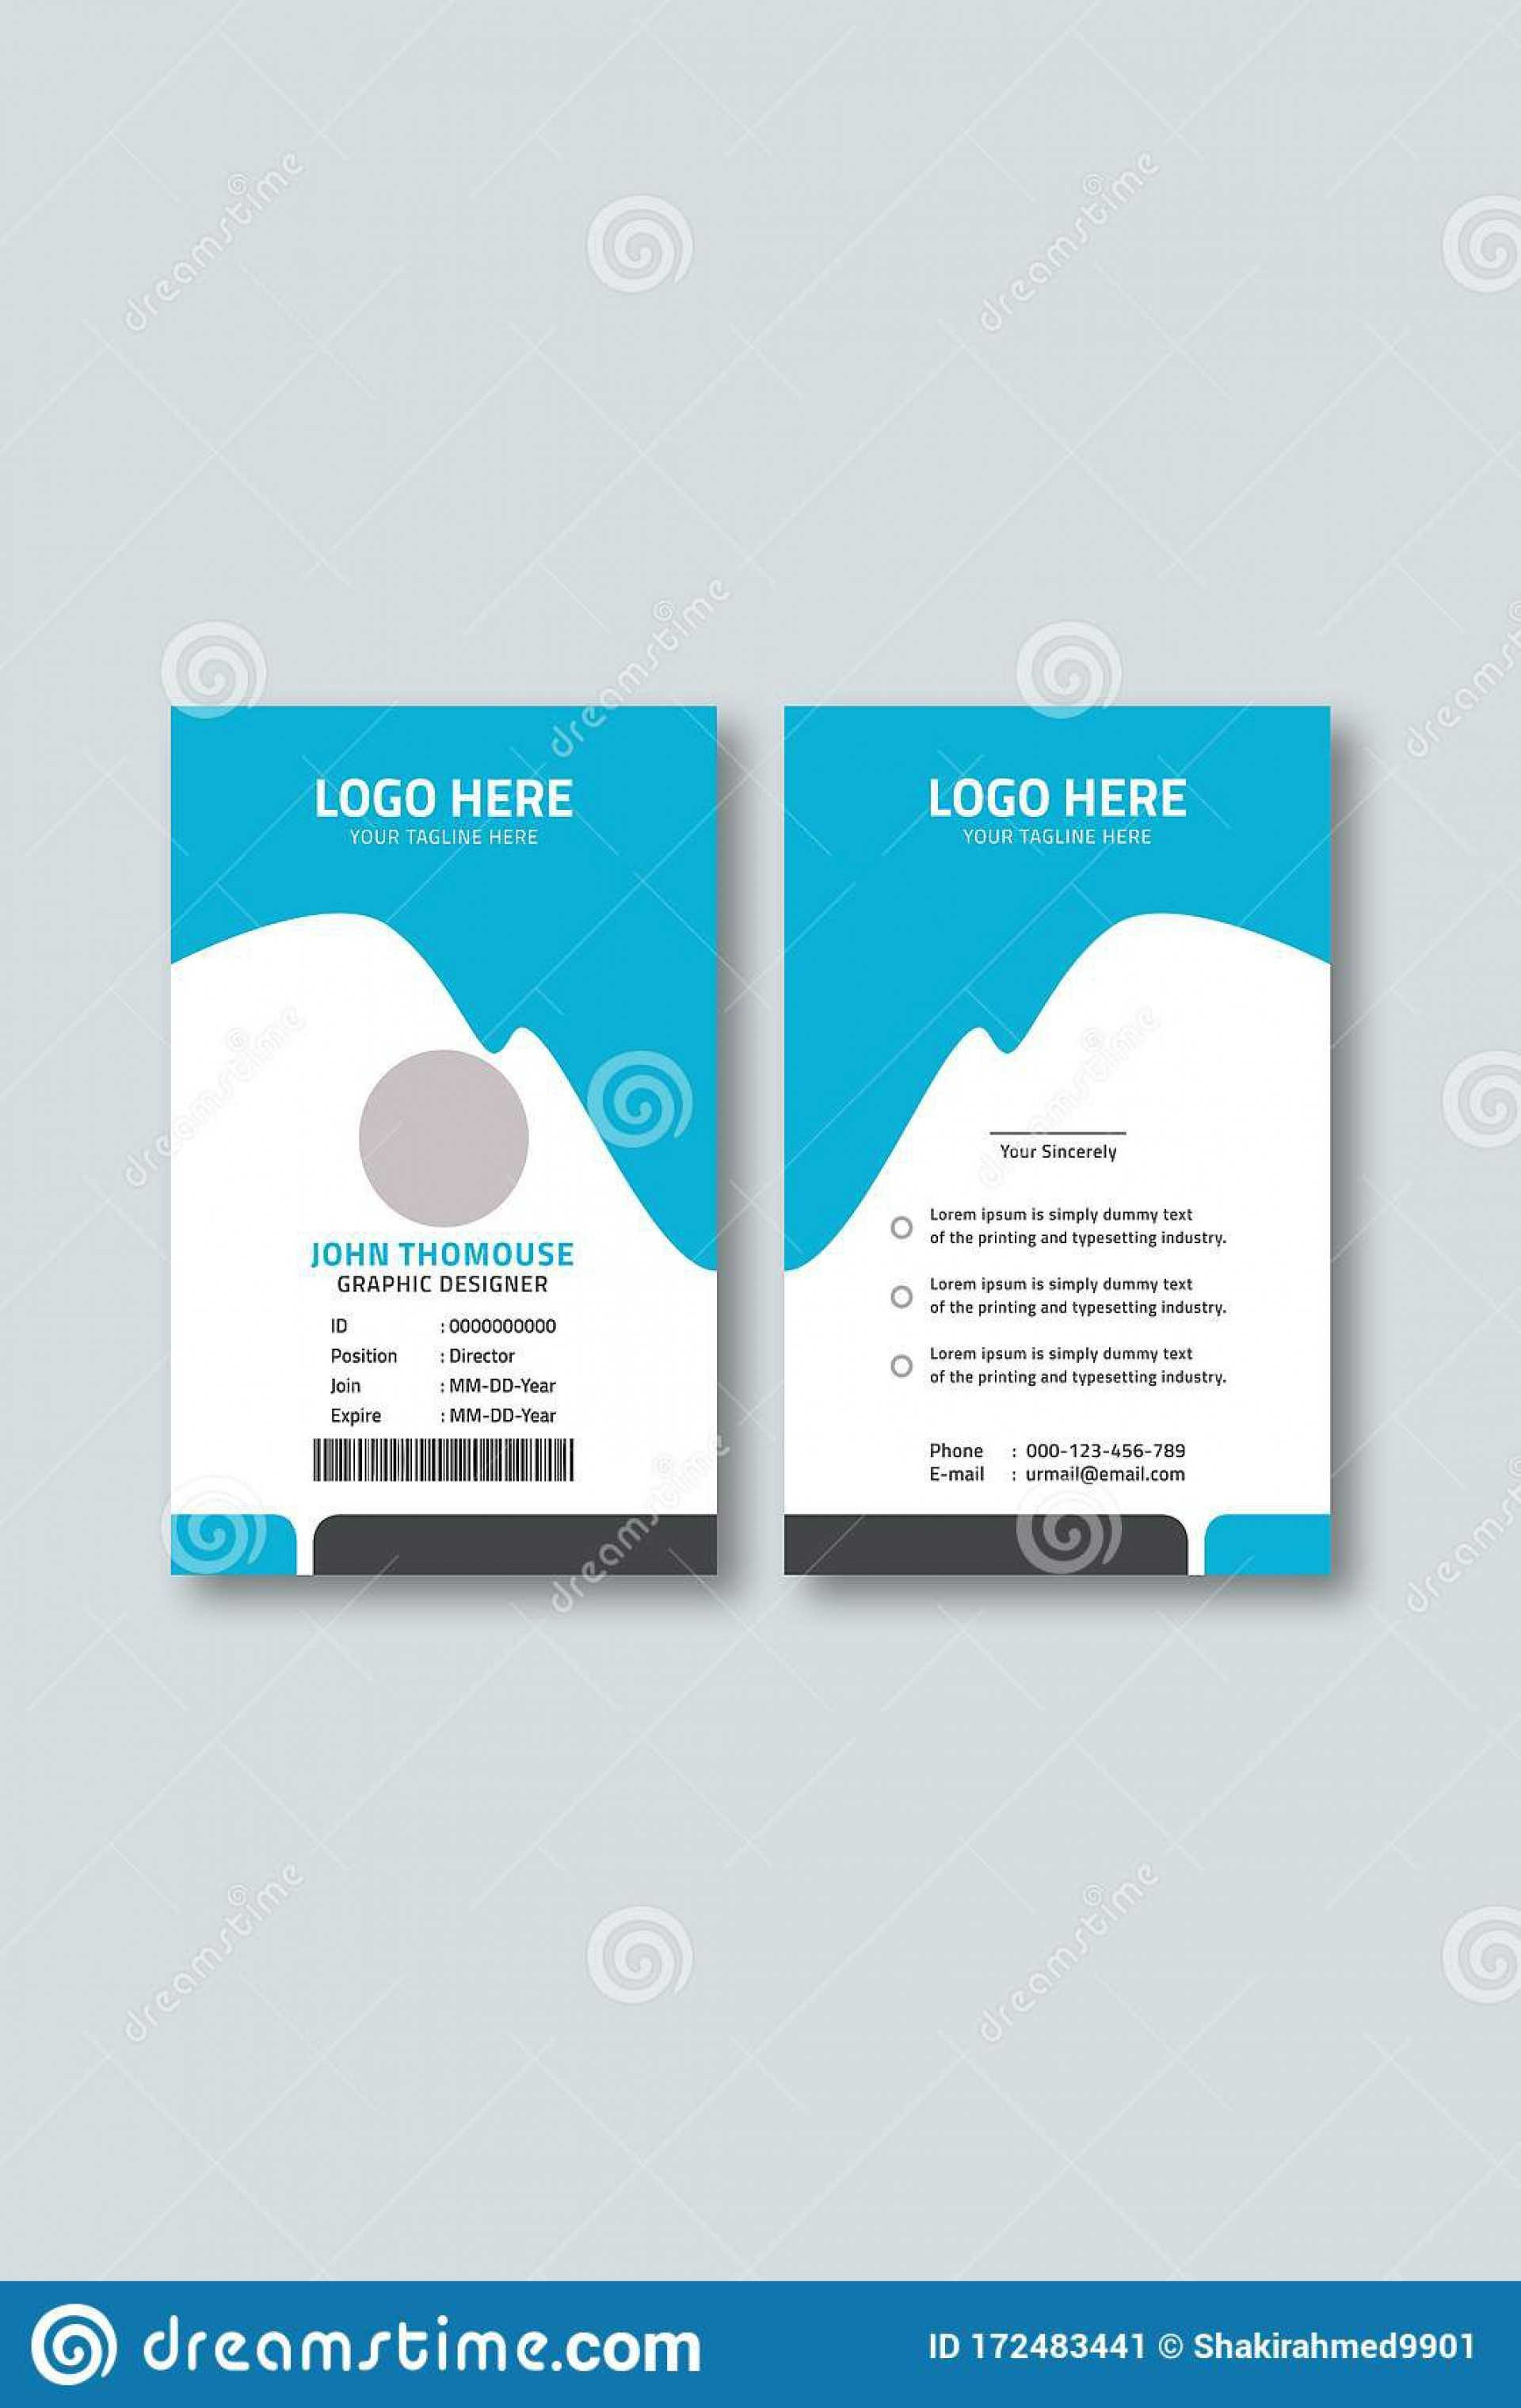 006 Top Employee Id Card Template Image  Free Download Psd Word1920